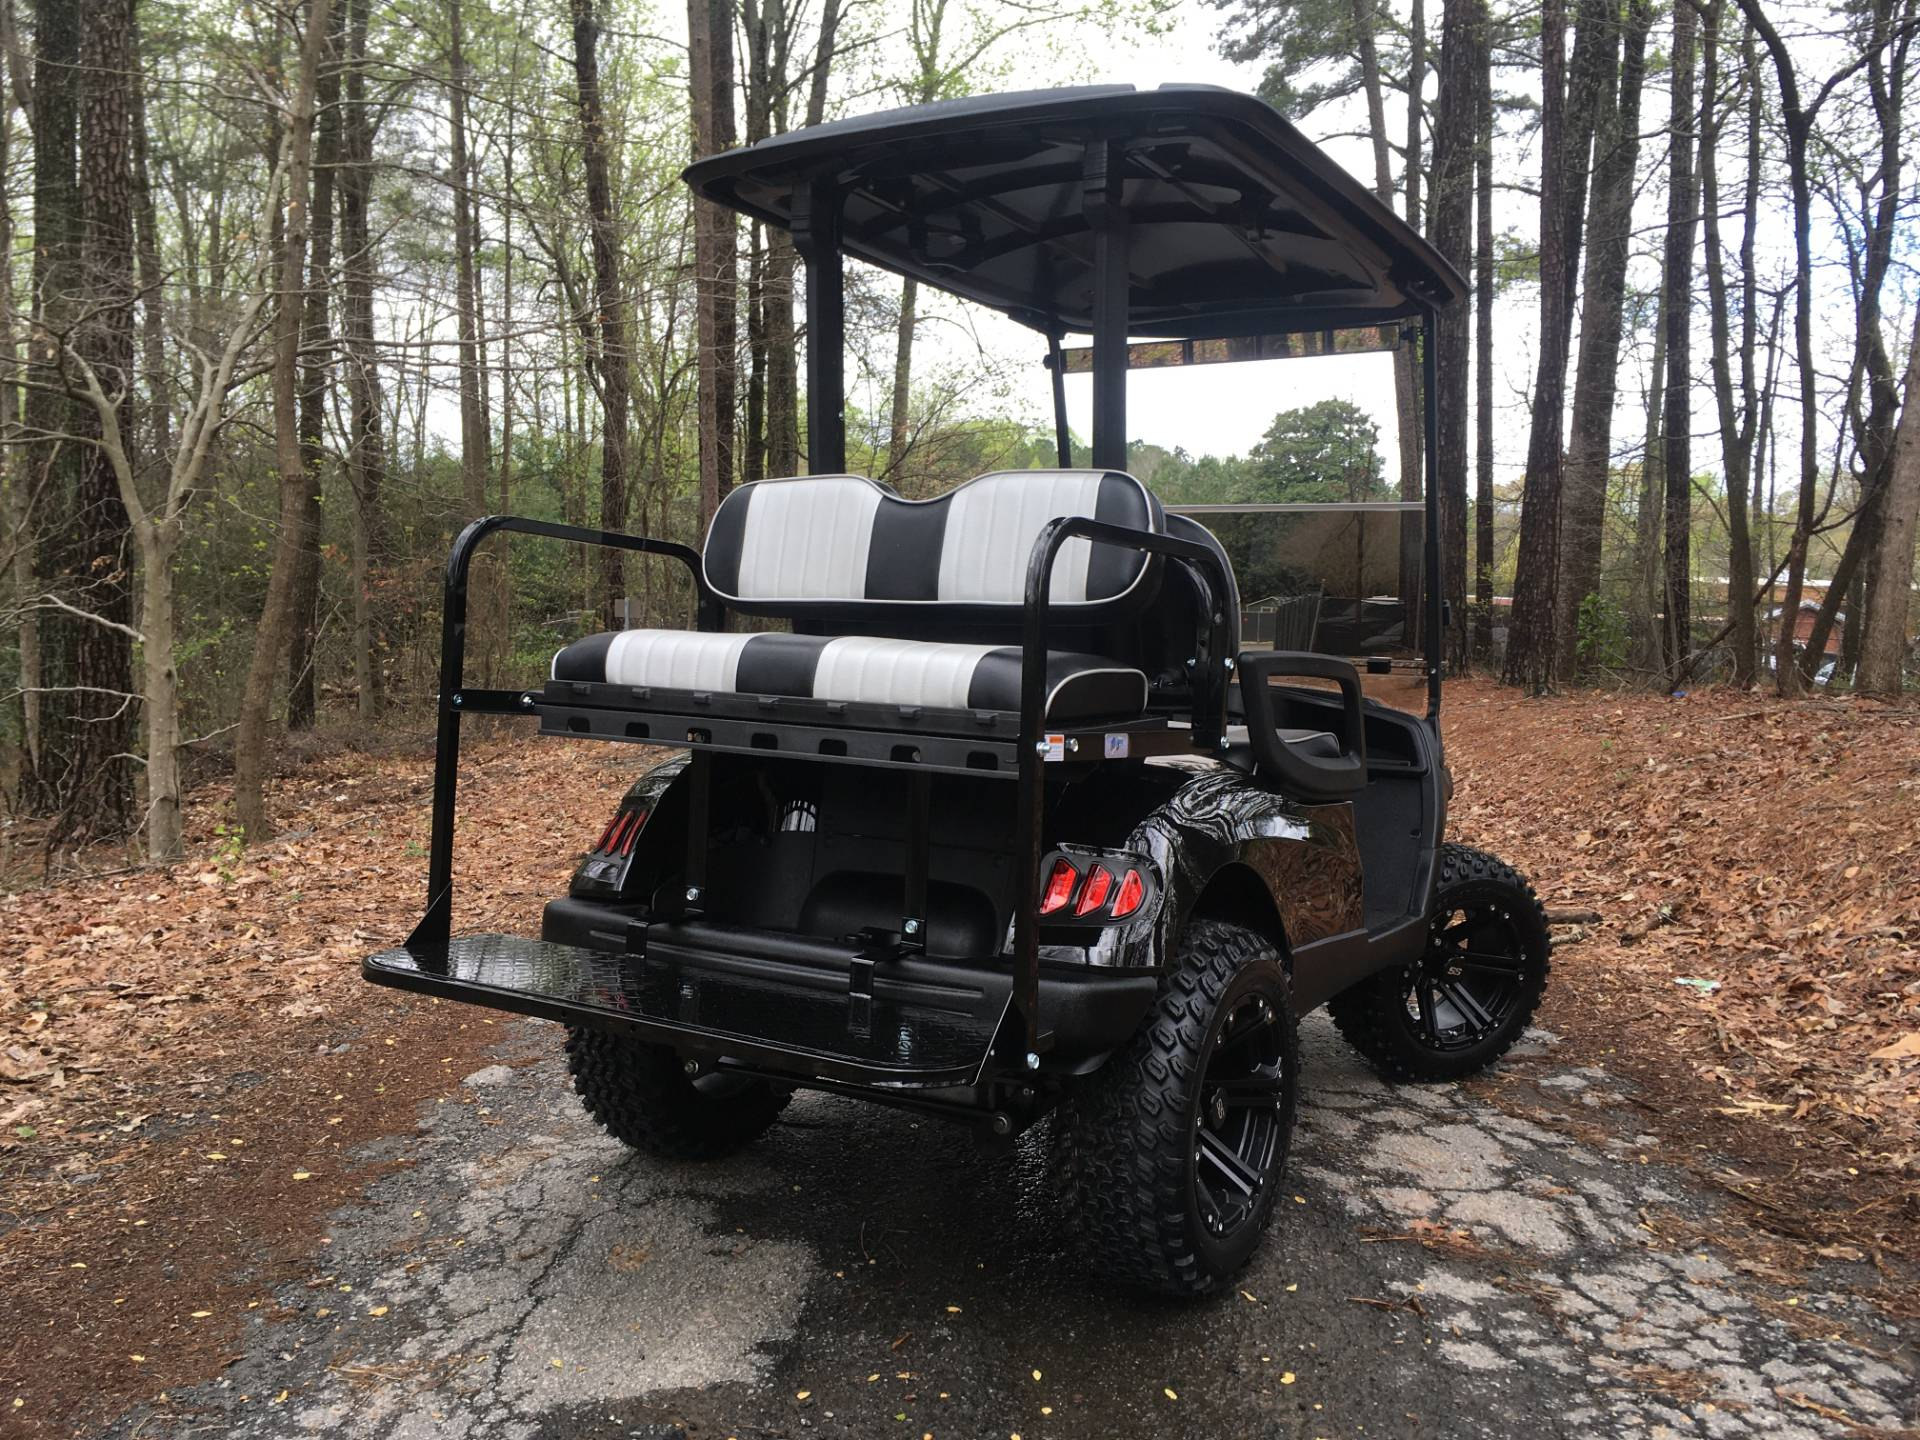 2014 YAMAHA DRIVE G-29 GAS GOLF CART in Woodstock, Georgia - Photo 4